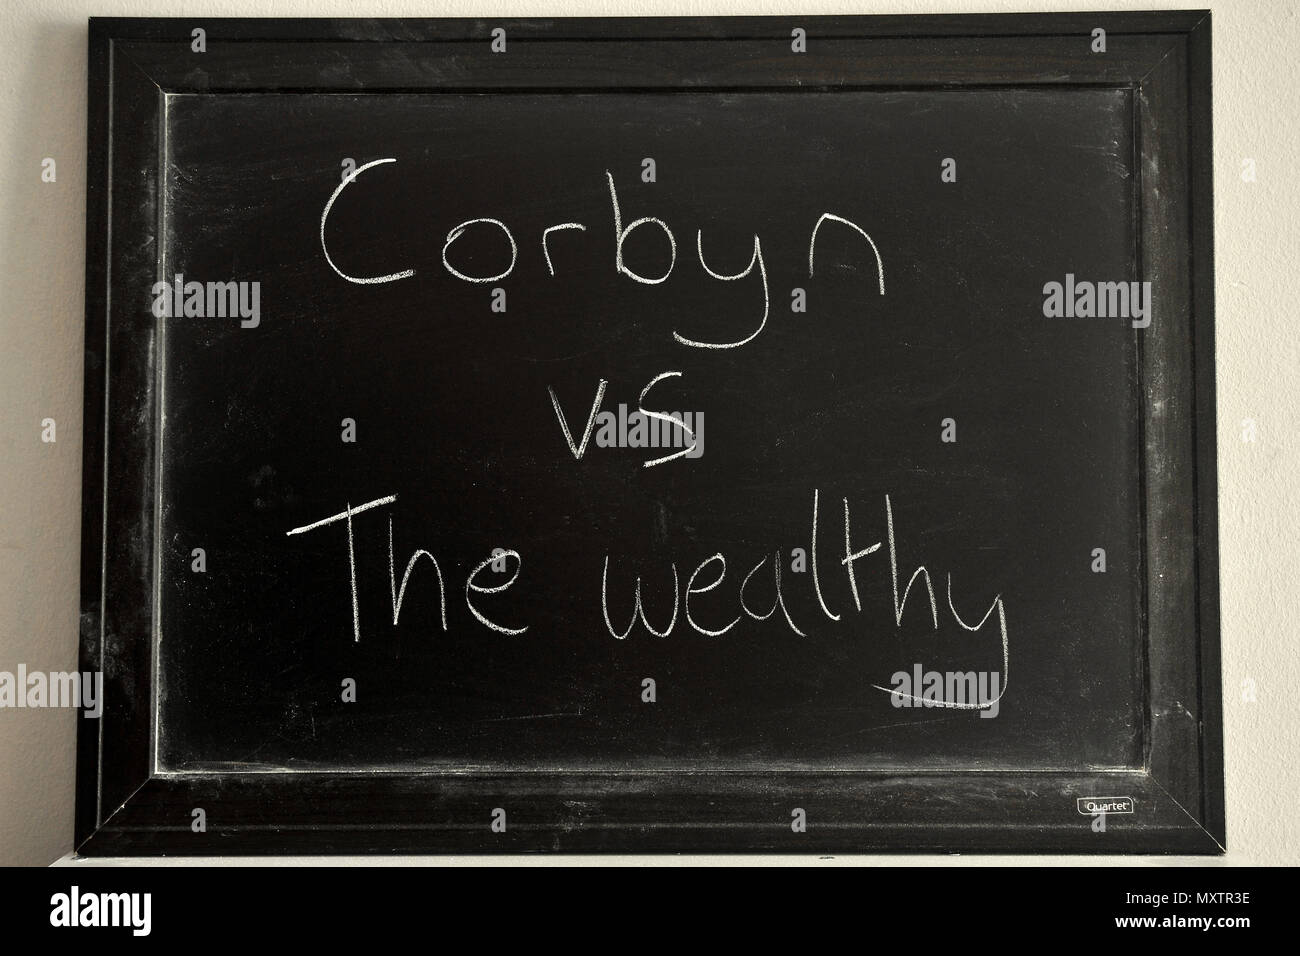 Corbyn vs The Wealthy written in white chalk on a blackboard. - Stock Image